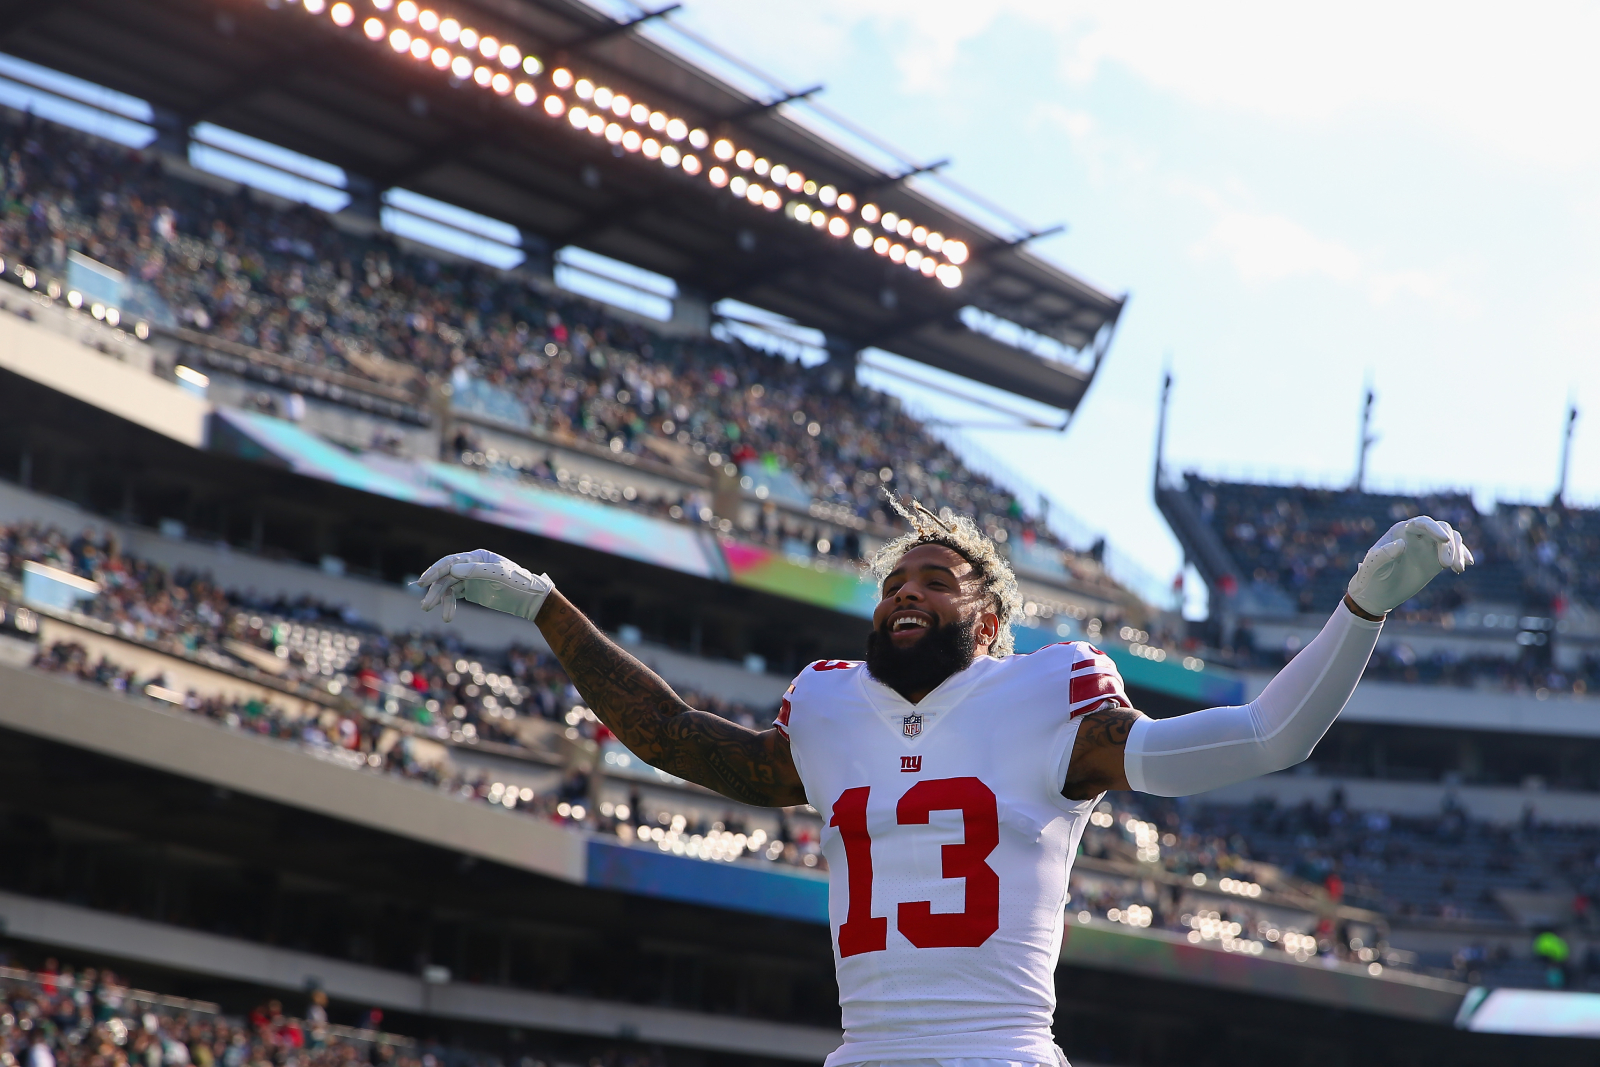 Odell Beckham Jr. was an excellent wide receiver for the New York Giants. However, he recently made revealing comments about his time there.